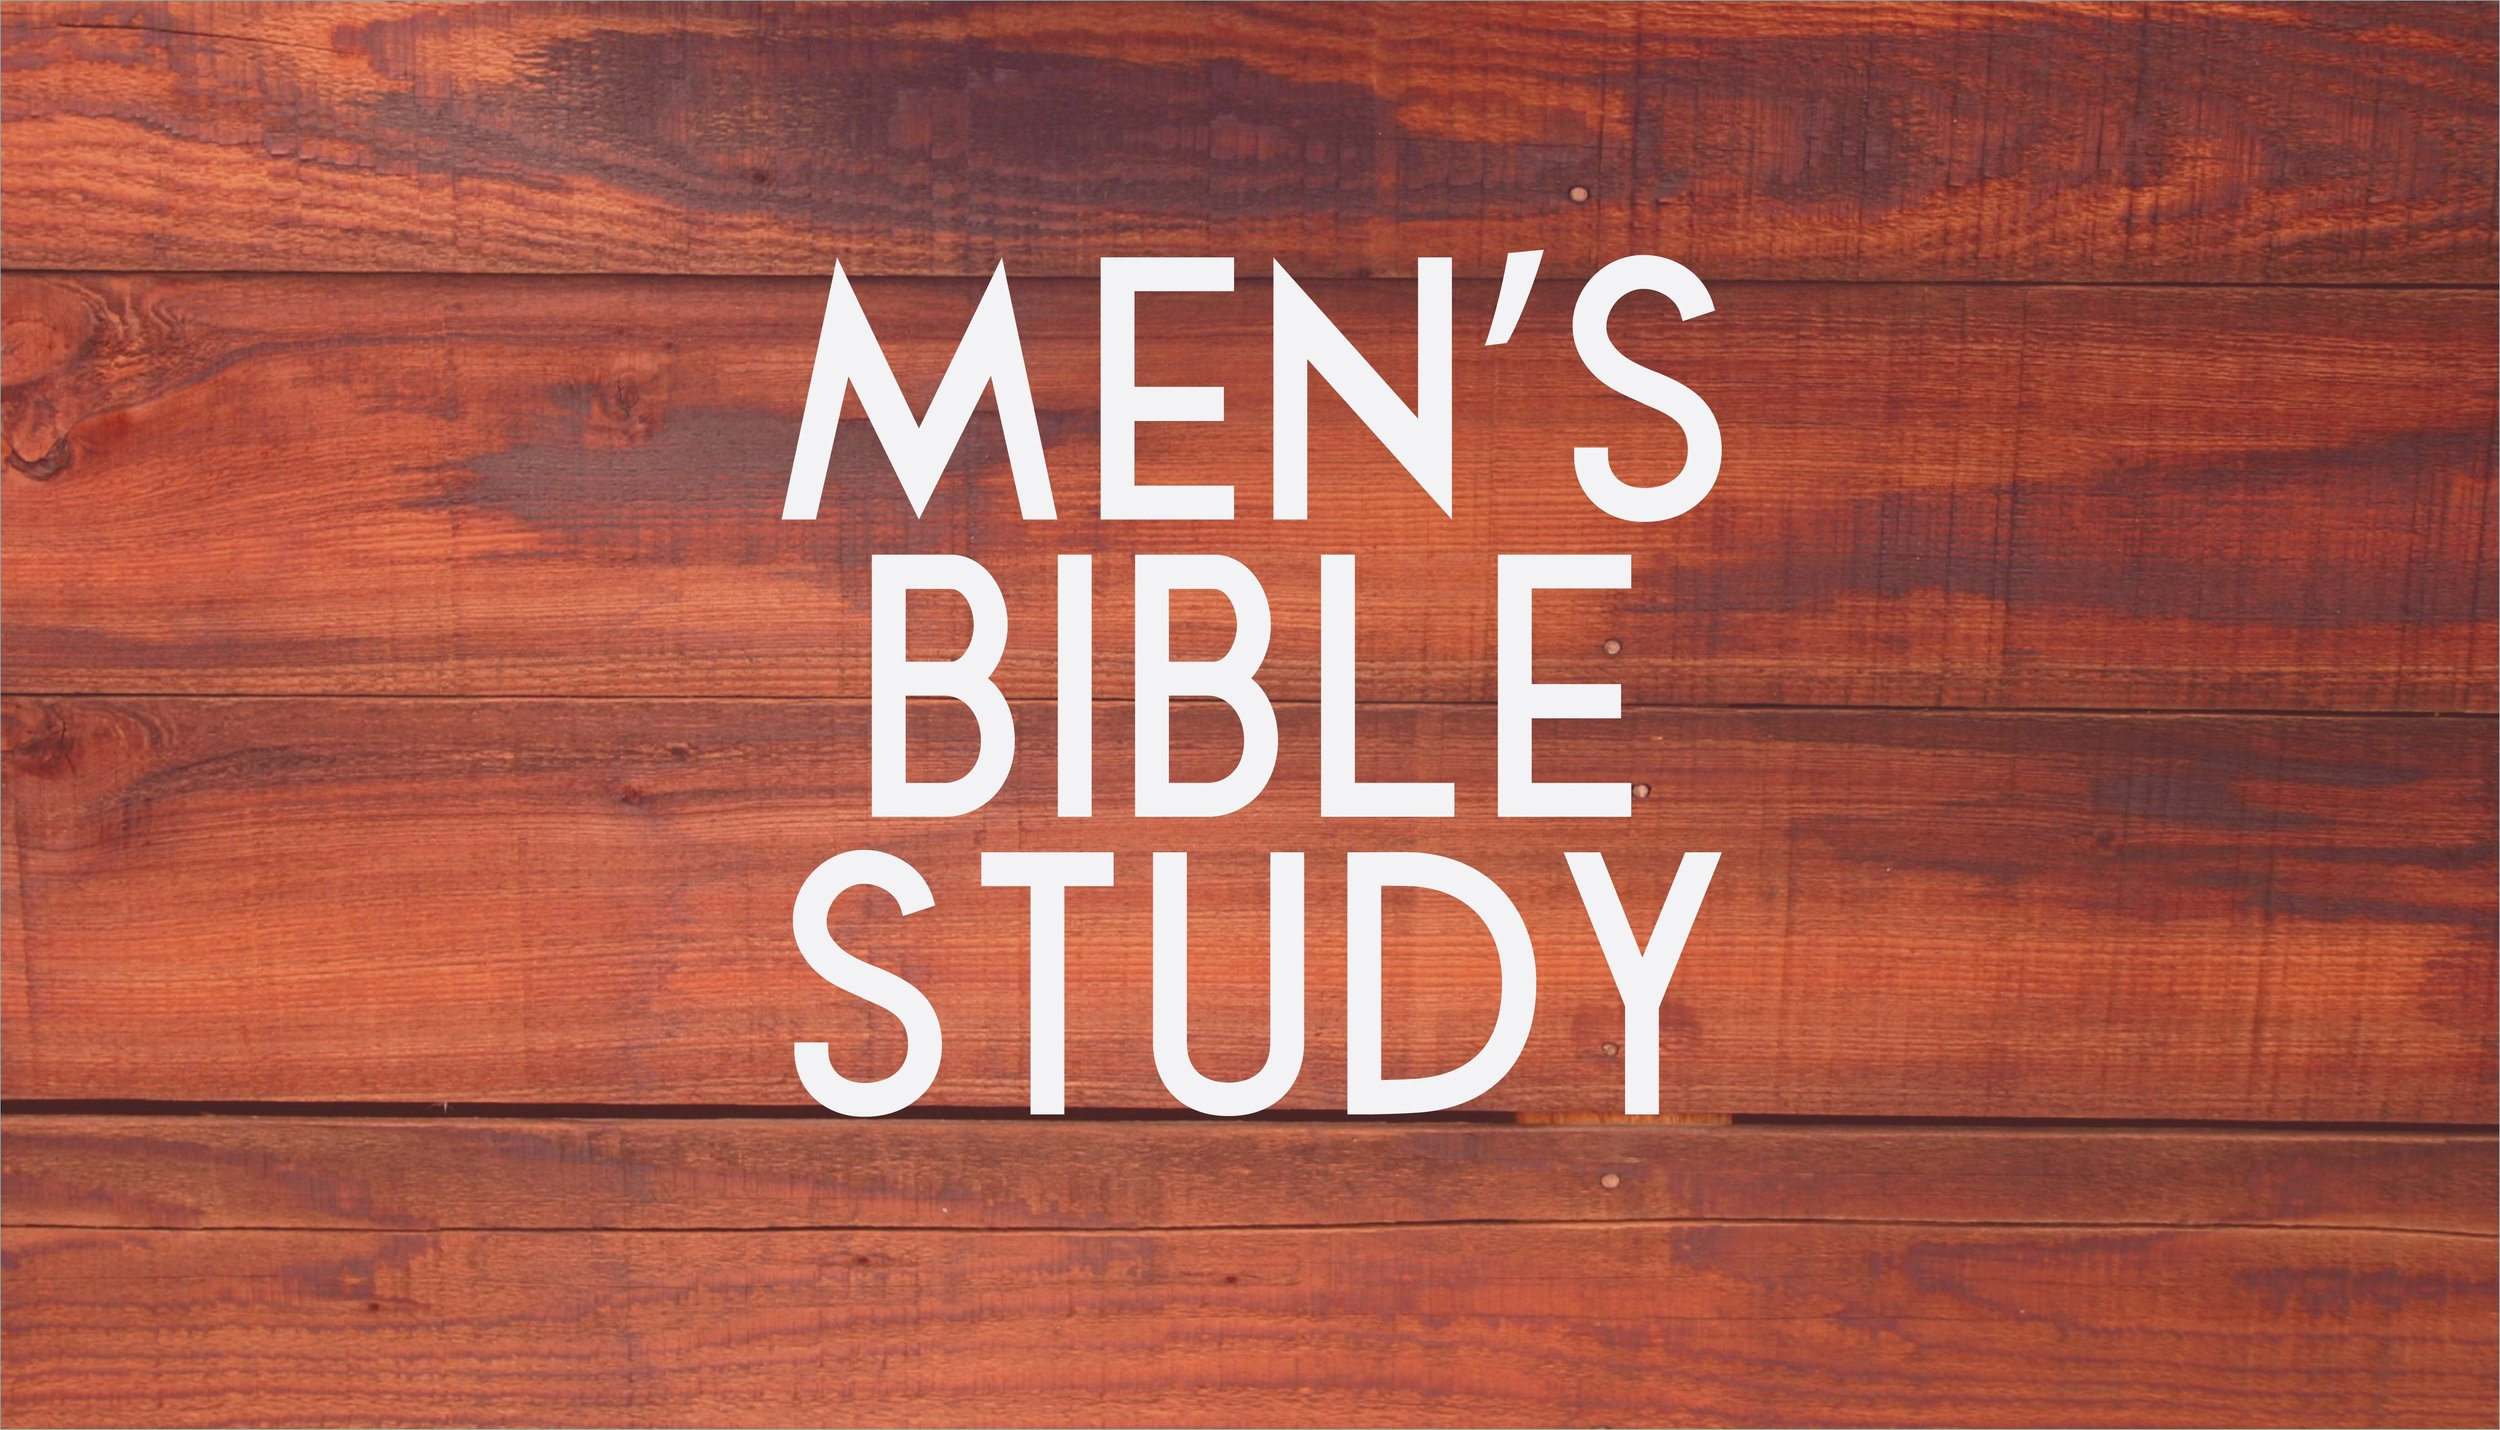 Men's Bible Study  Join us every other Tuesday of the month for Men's Bible Study at Arcadia City Church. Men's Bible Study meets at 7am at Chick-Fil-A (44th St. and Indian School Rd.) Join us as we dive into God's word and grow deeper in our relationships.